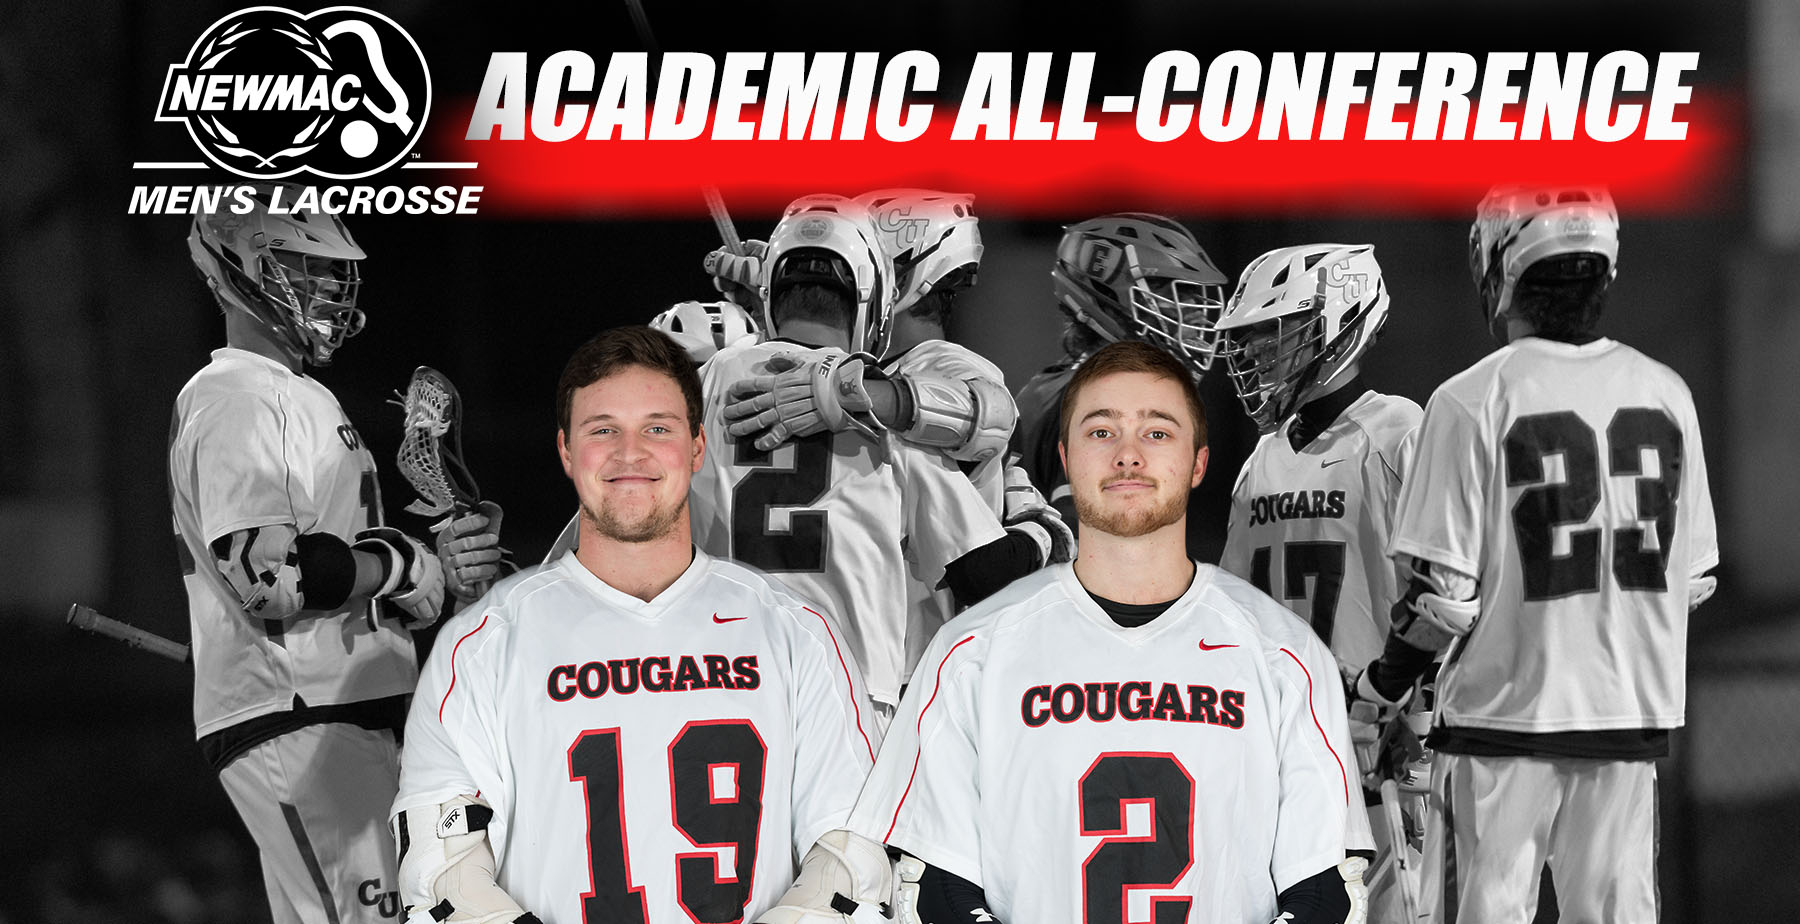 King, Pierce Named to 2019 Men's Lacrosse NEWMAC Academic All-Conference Team